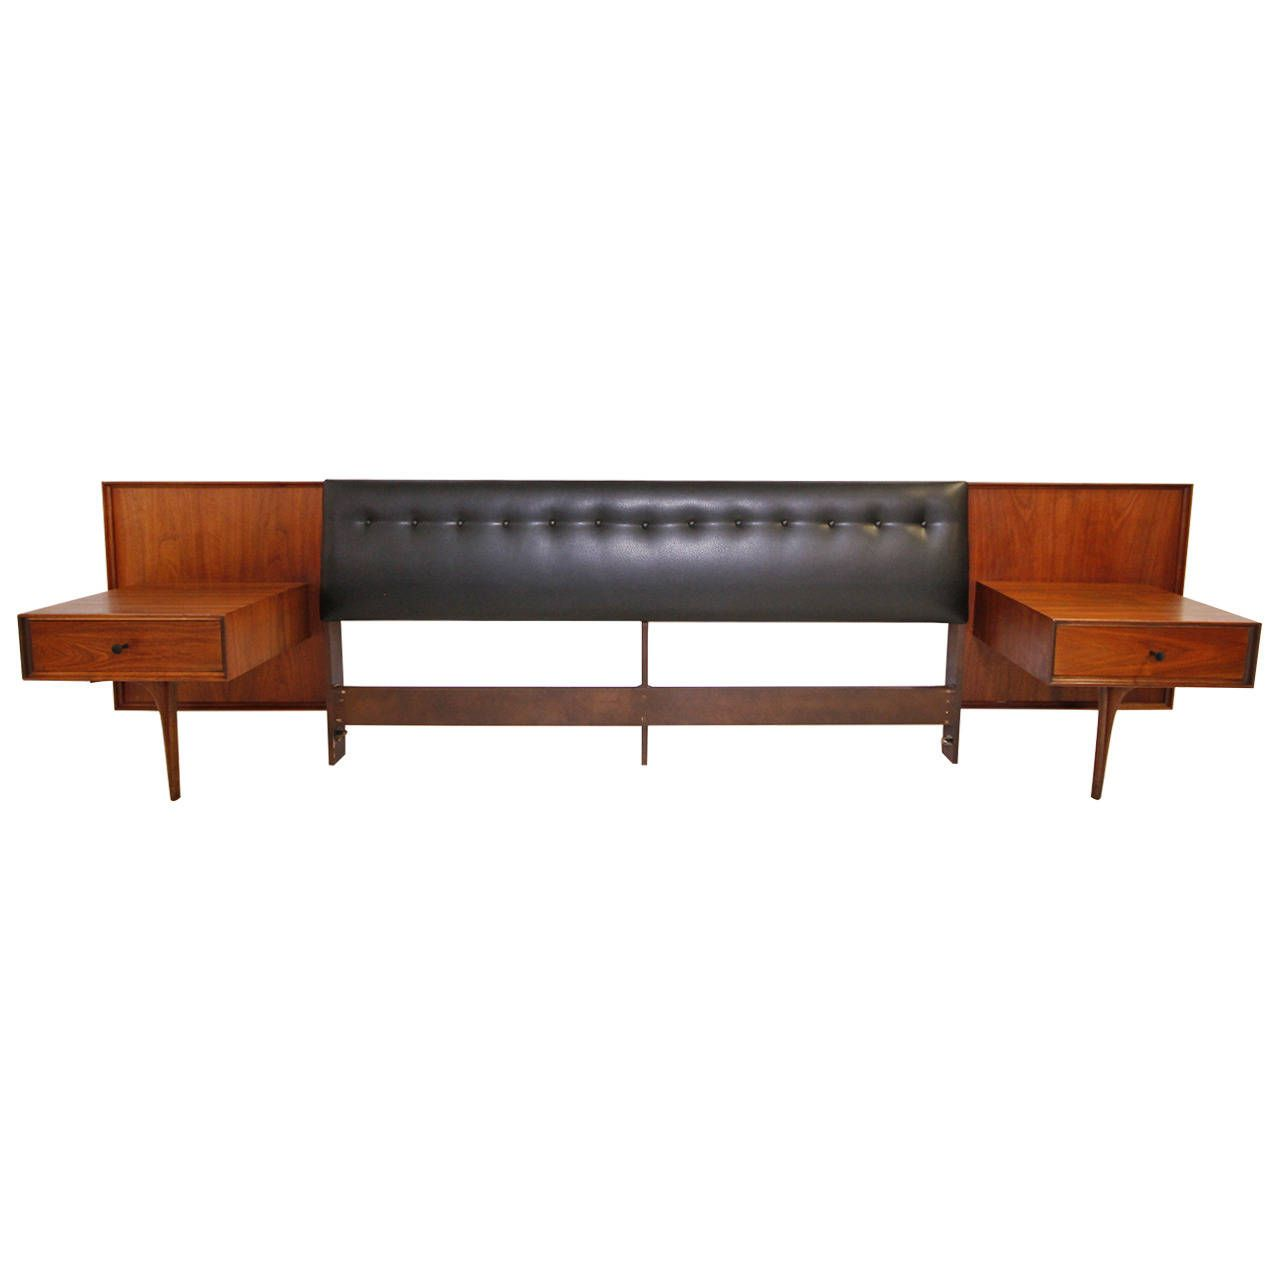 Best Stunning Mid Century Modern King Headboard With Floating 640 x 480